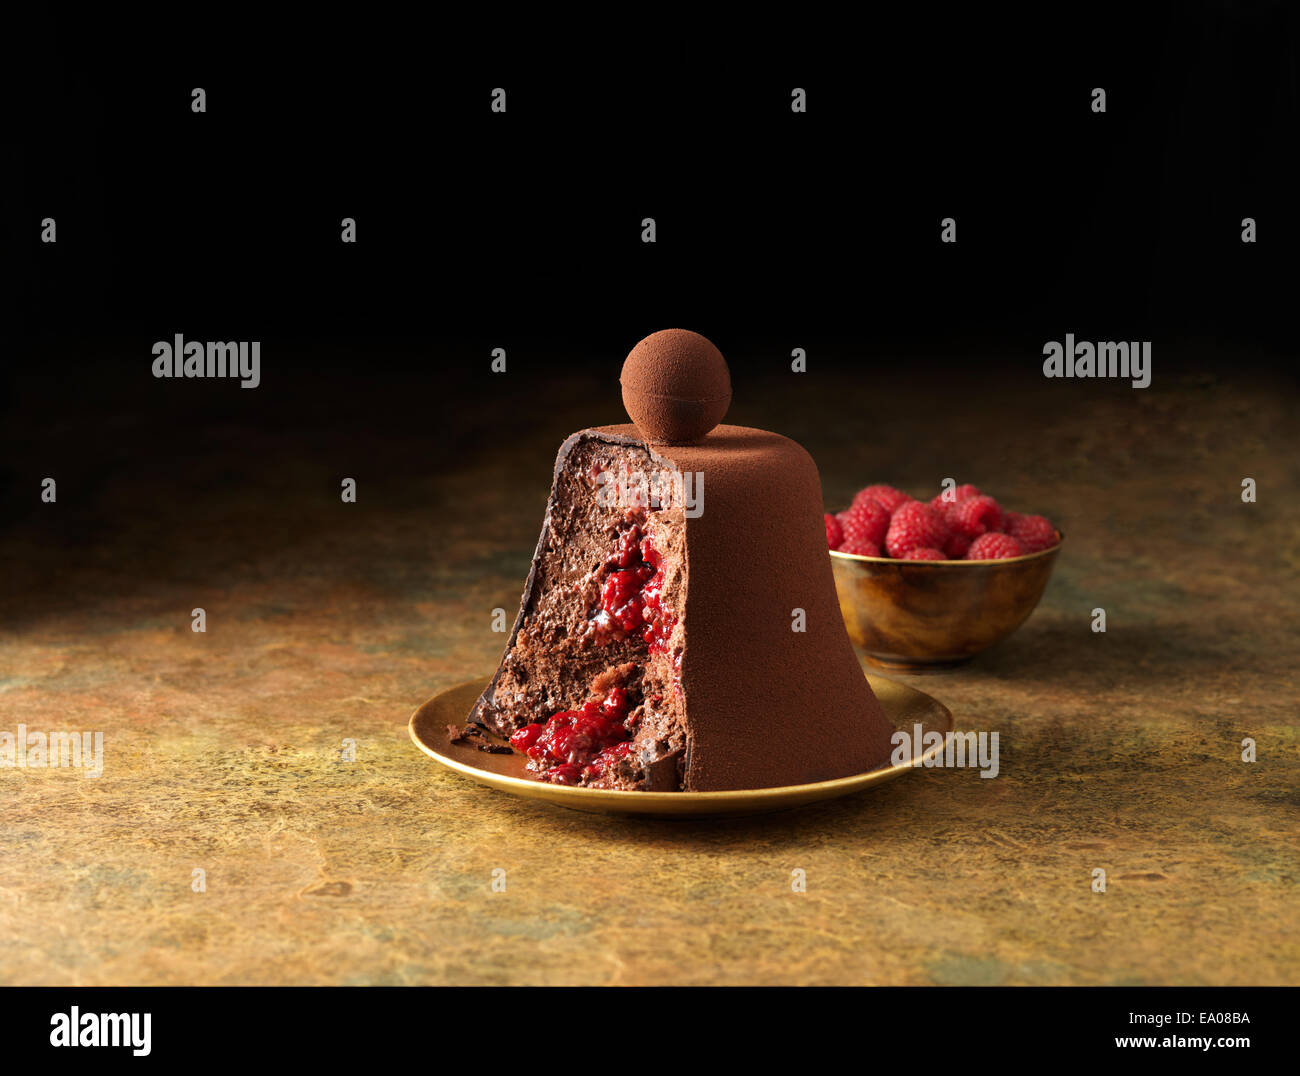 Chocolate mousse dessert - Stock Image